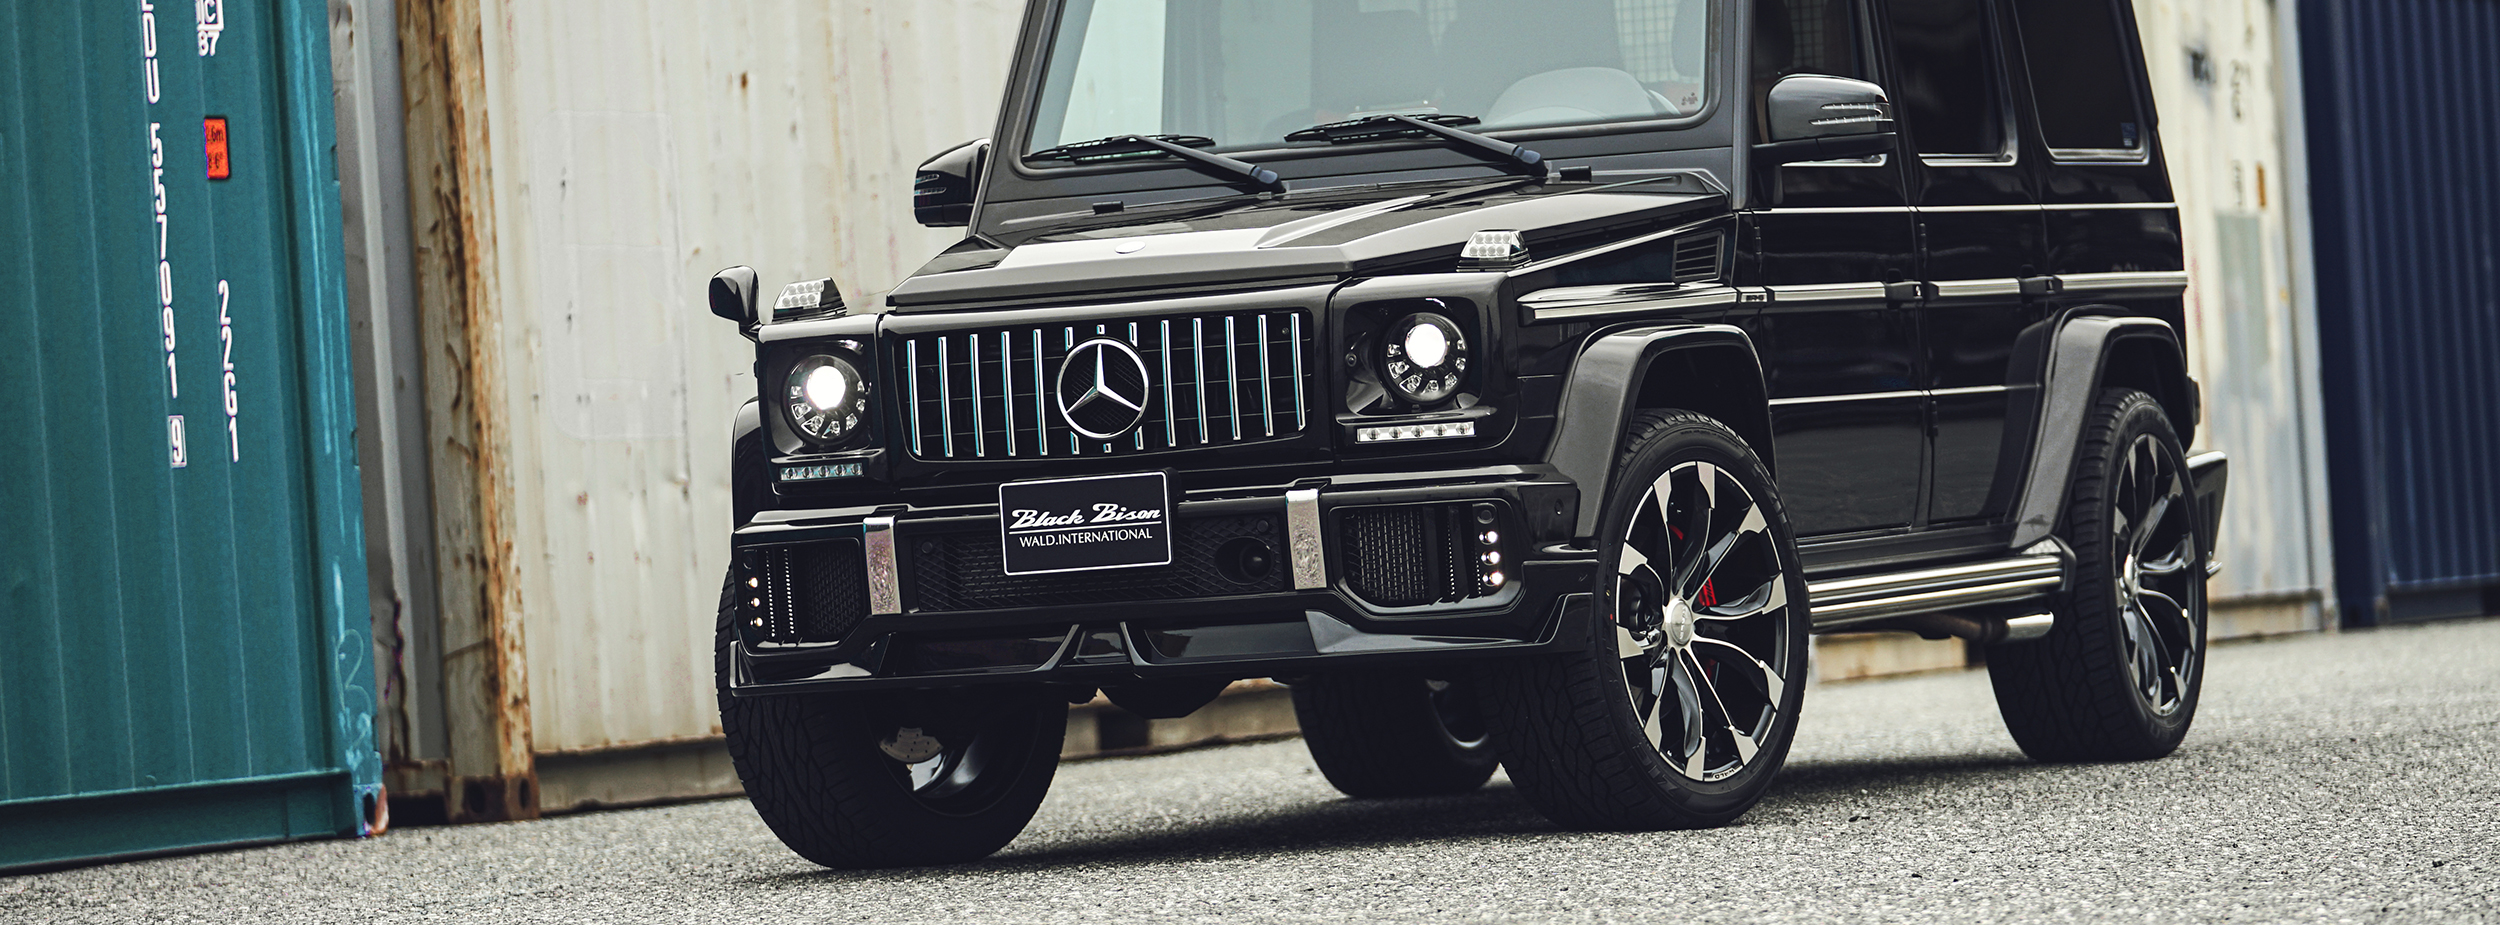 G-CLASS W463 WALD SPORTS LINE BLACK BISON EDITION